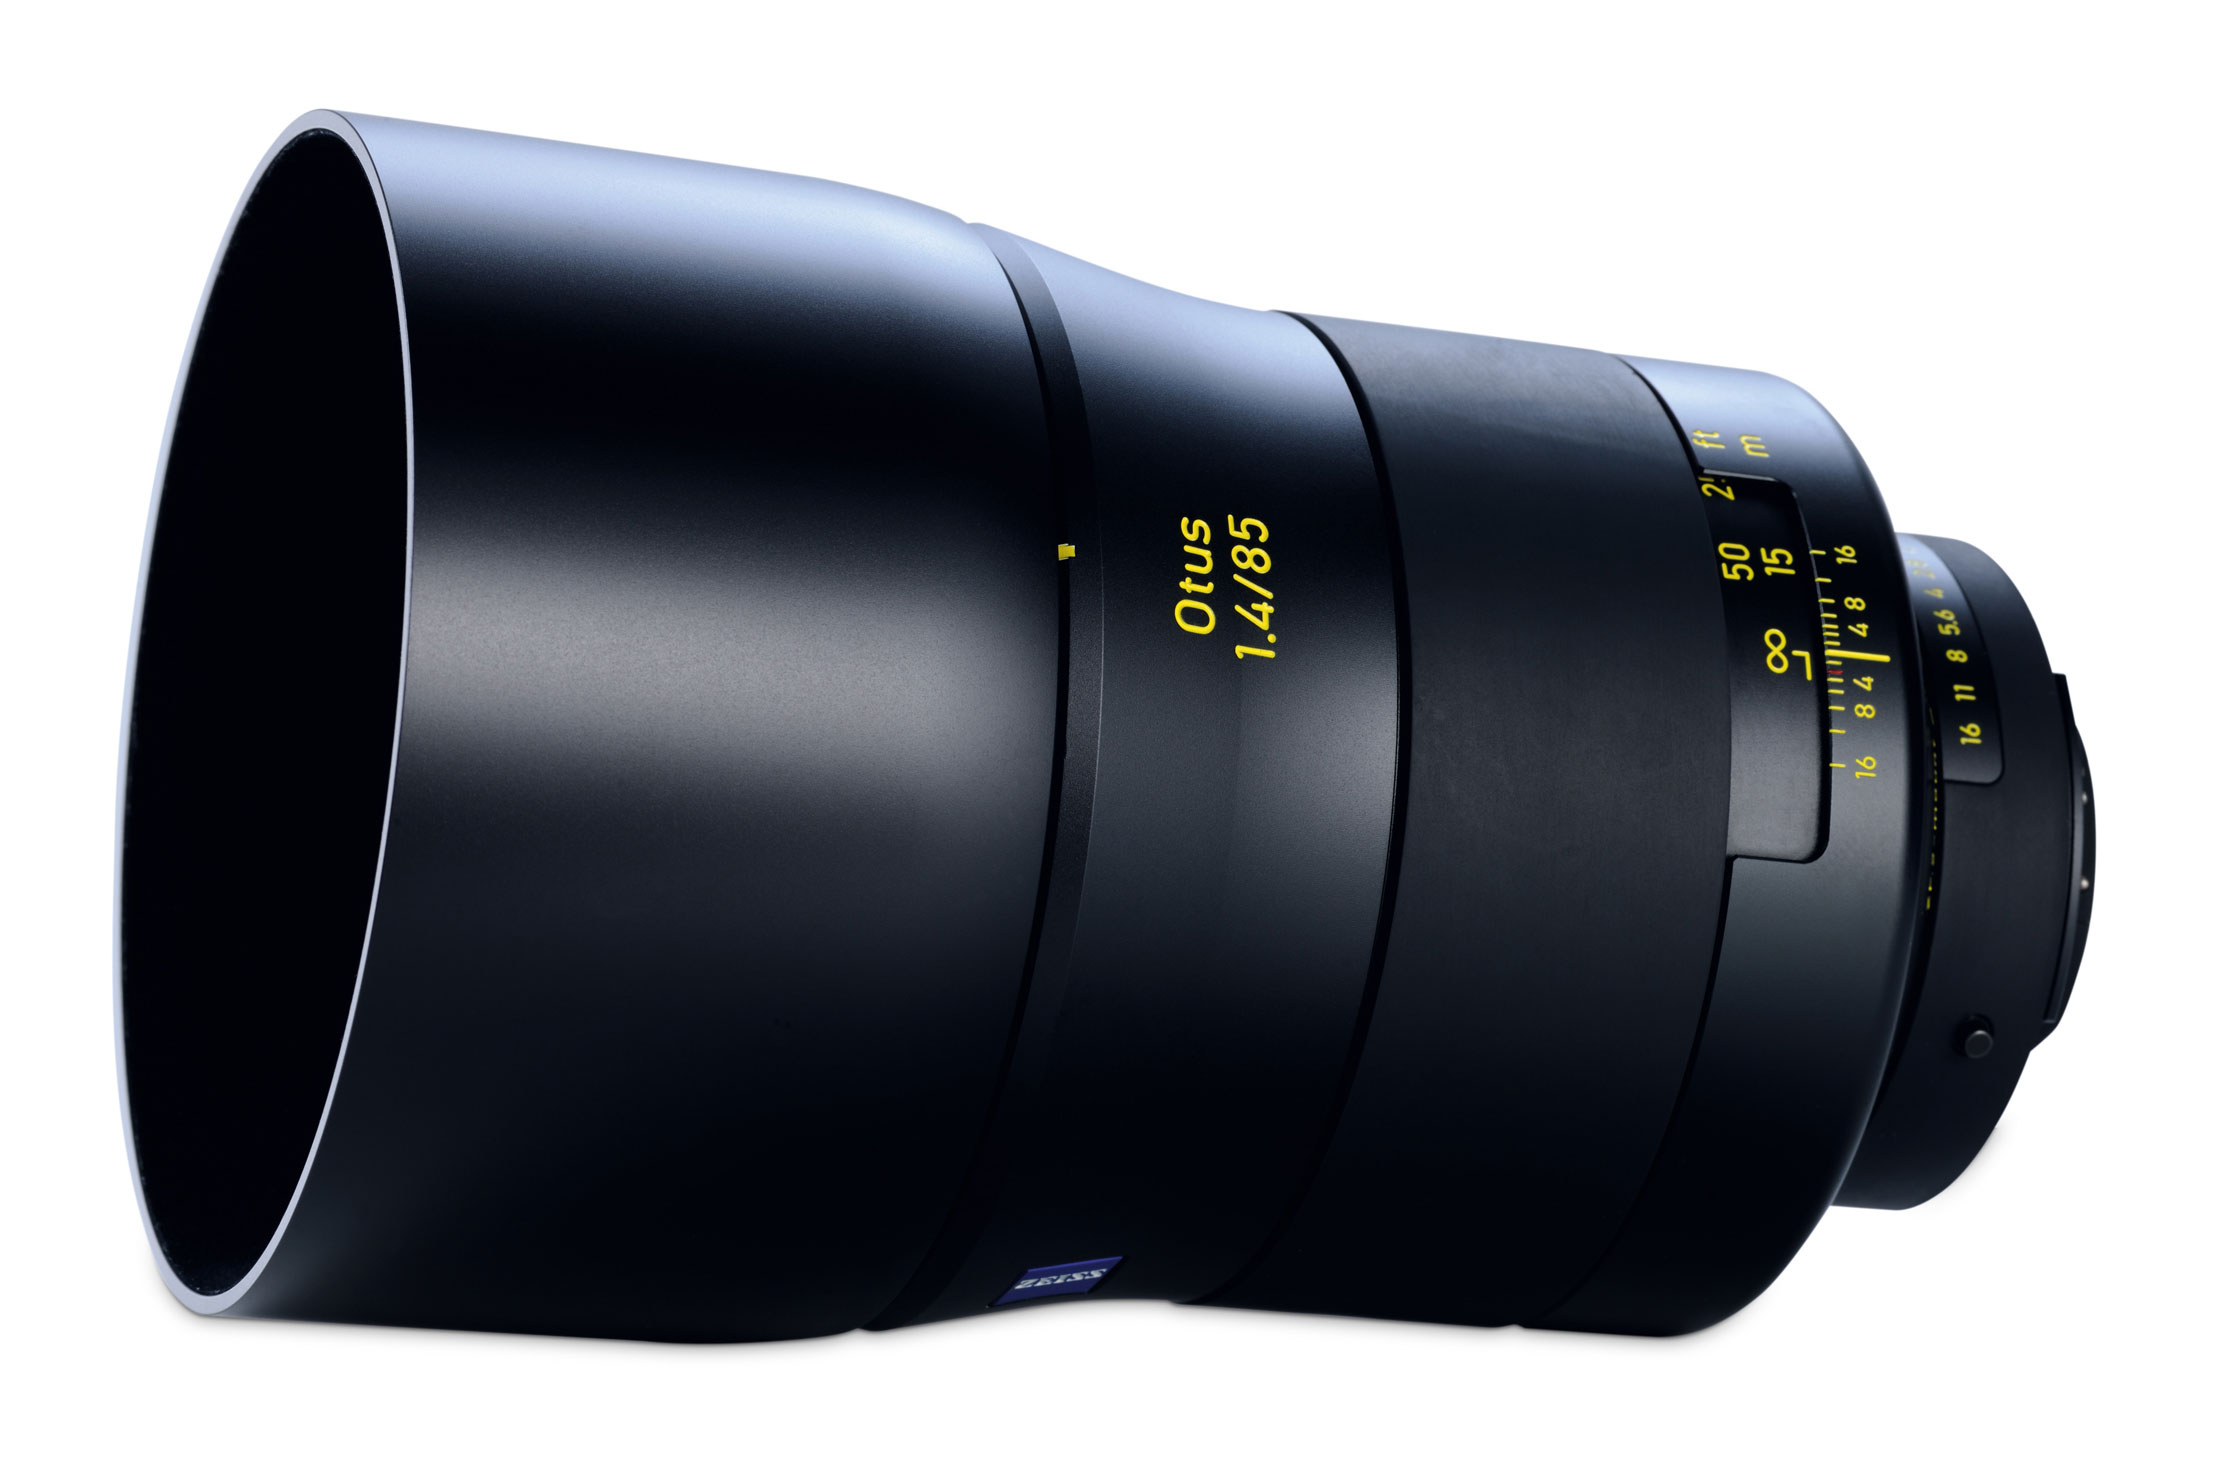 Zeiss promises its Otus 85mm f1.4 lens will be sharp as last year's 55mm model, the first of the premium family.